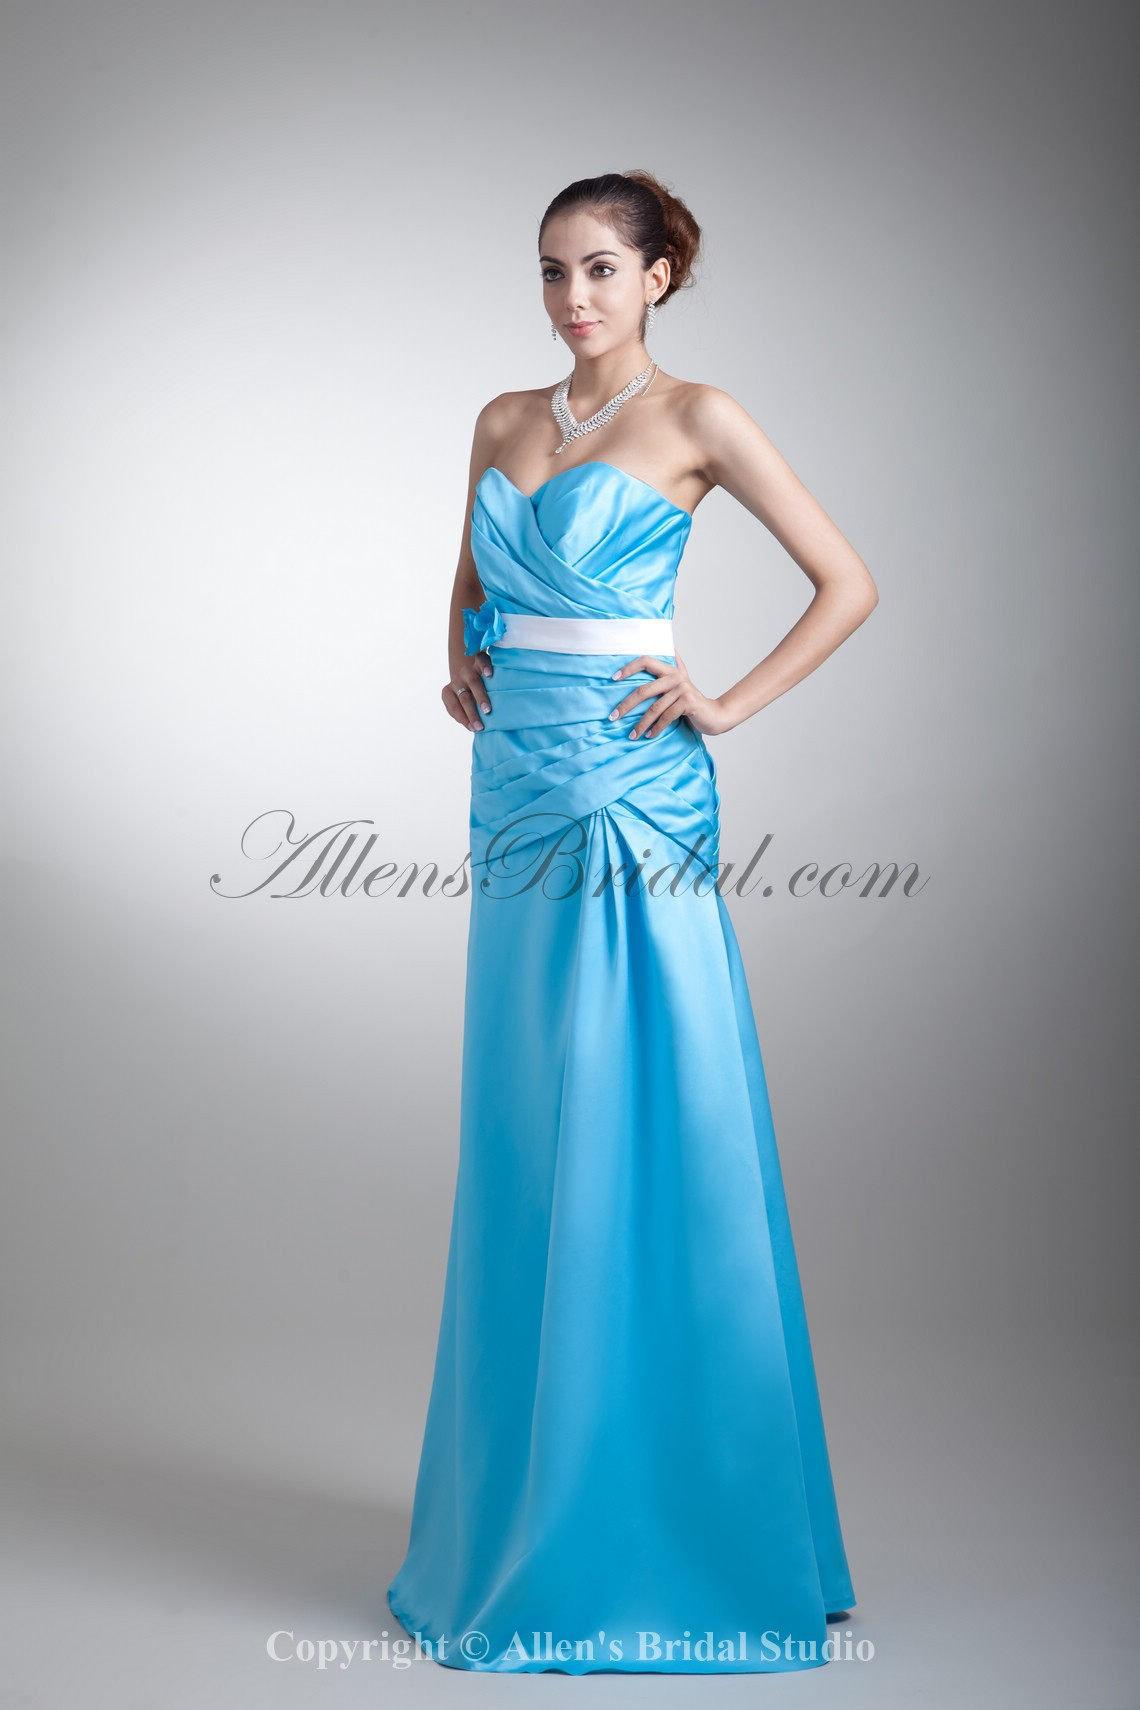 /757-6063/satin-sweetheart-neckline-floor-length-a-line-flowers-prom-dress.jpg